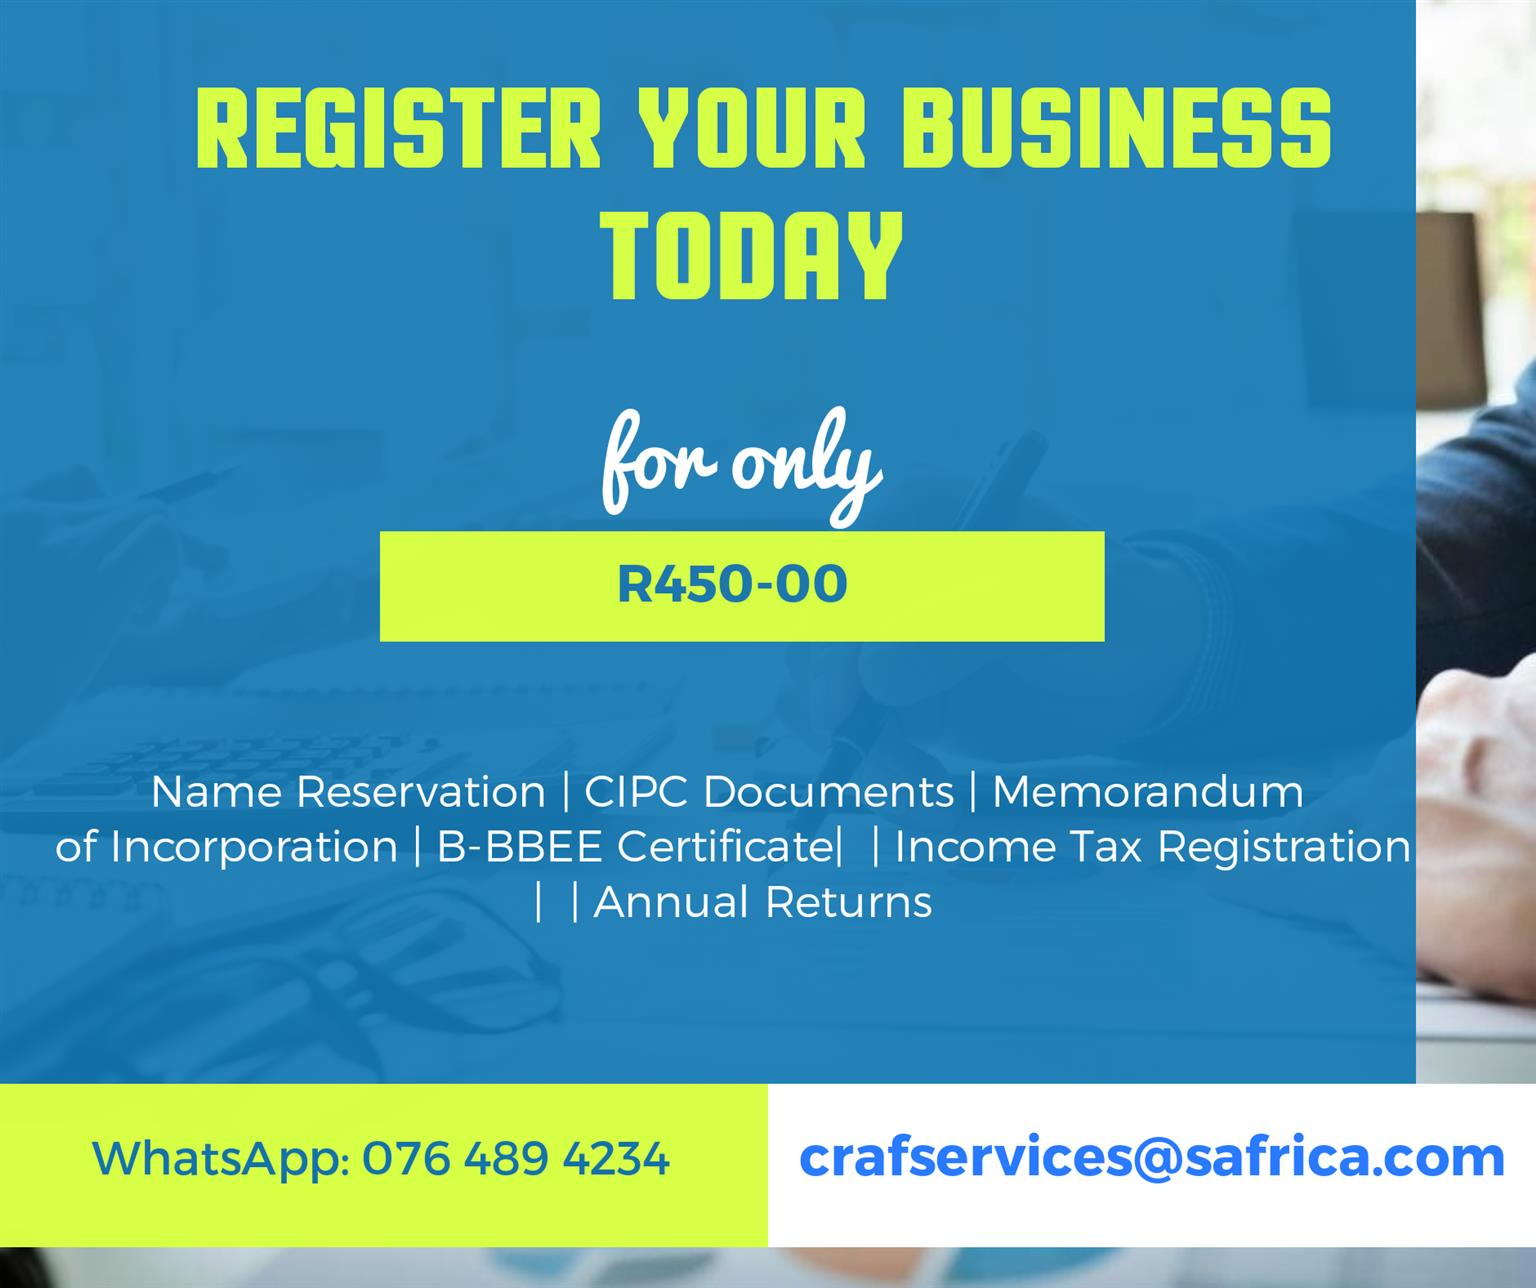 Register your business today